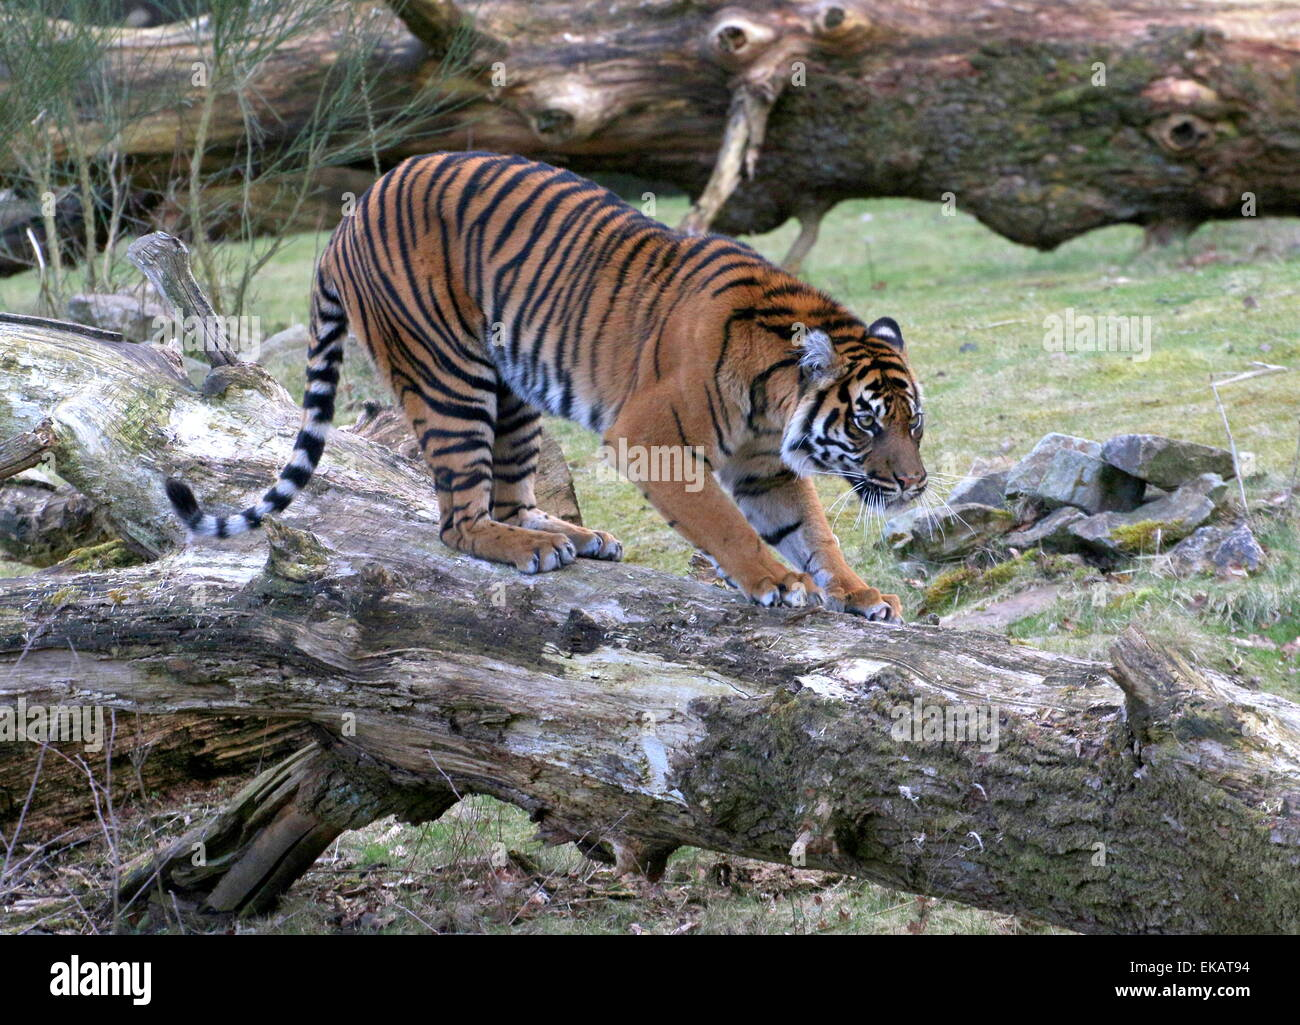 Female Sumatran tiger (Panthera tigris sumatrae) walking on a fallen tree - Stock Image